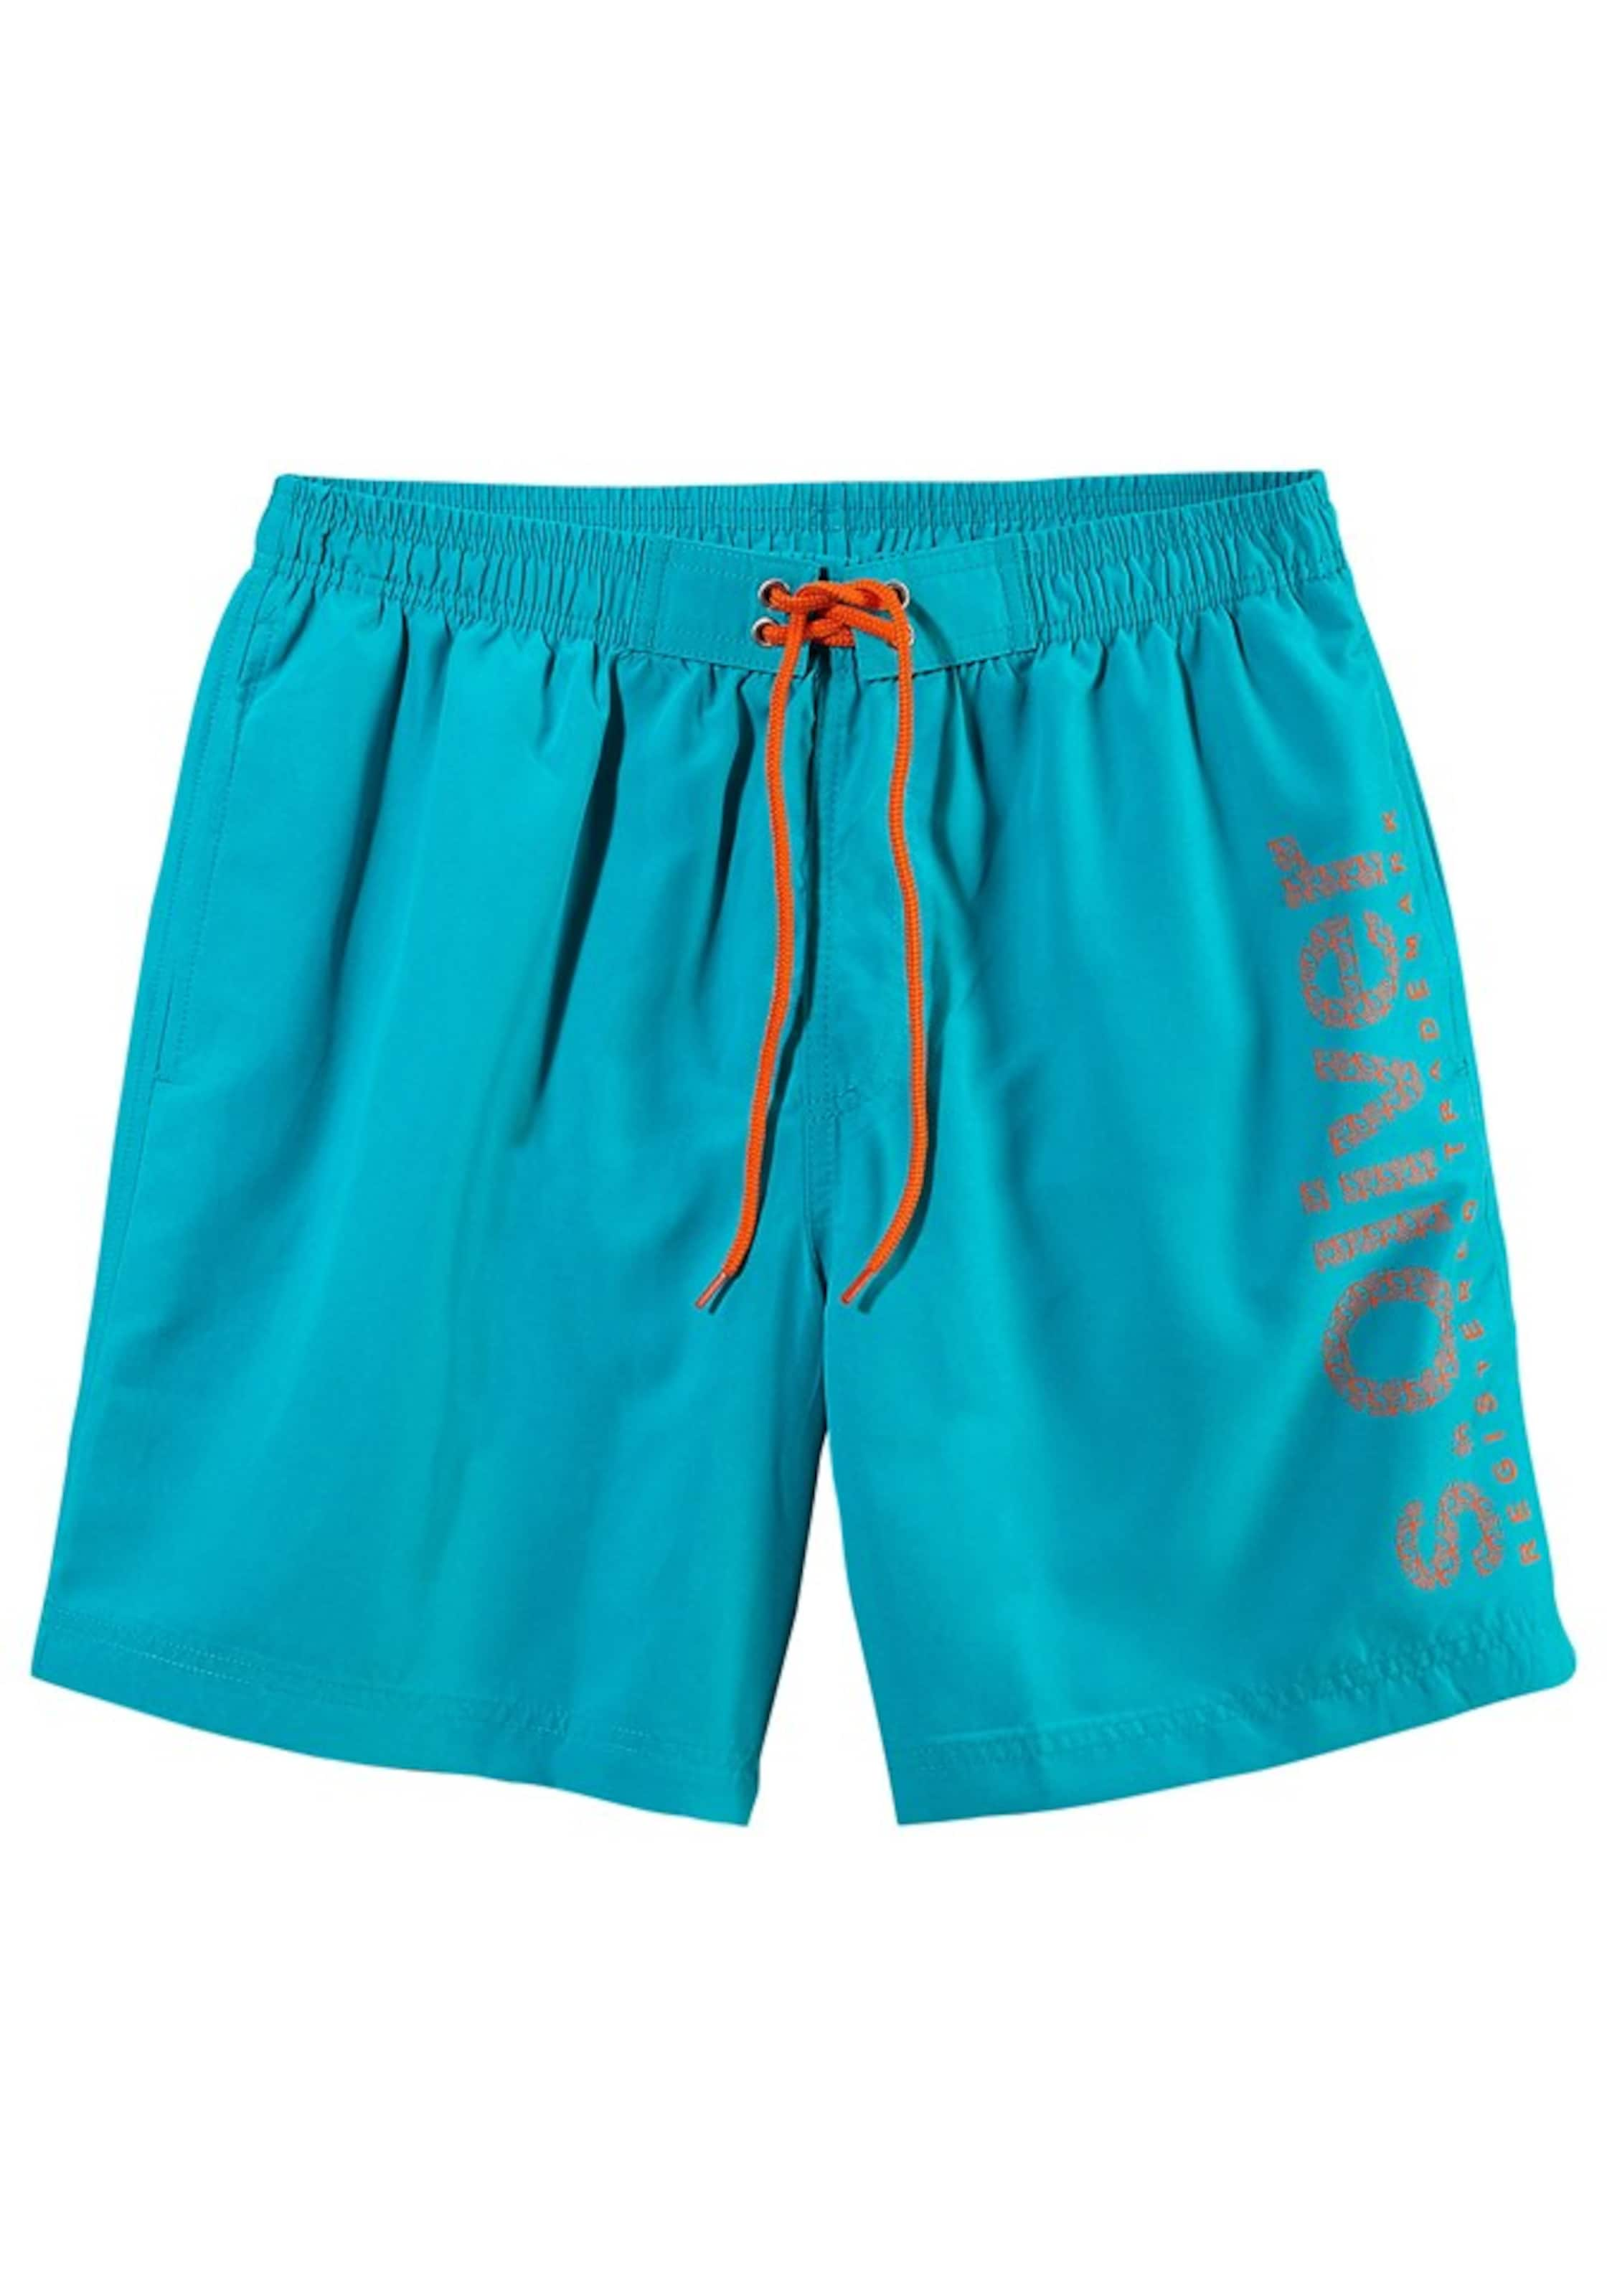 En De Bain Red Shorts S oliver Aqua Label XiPkuZ